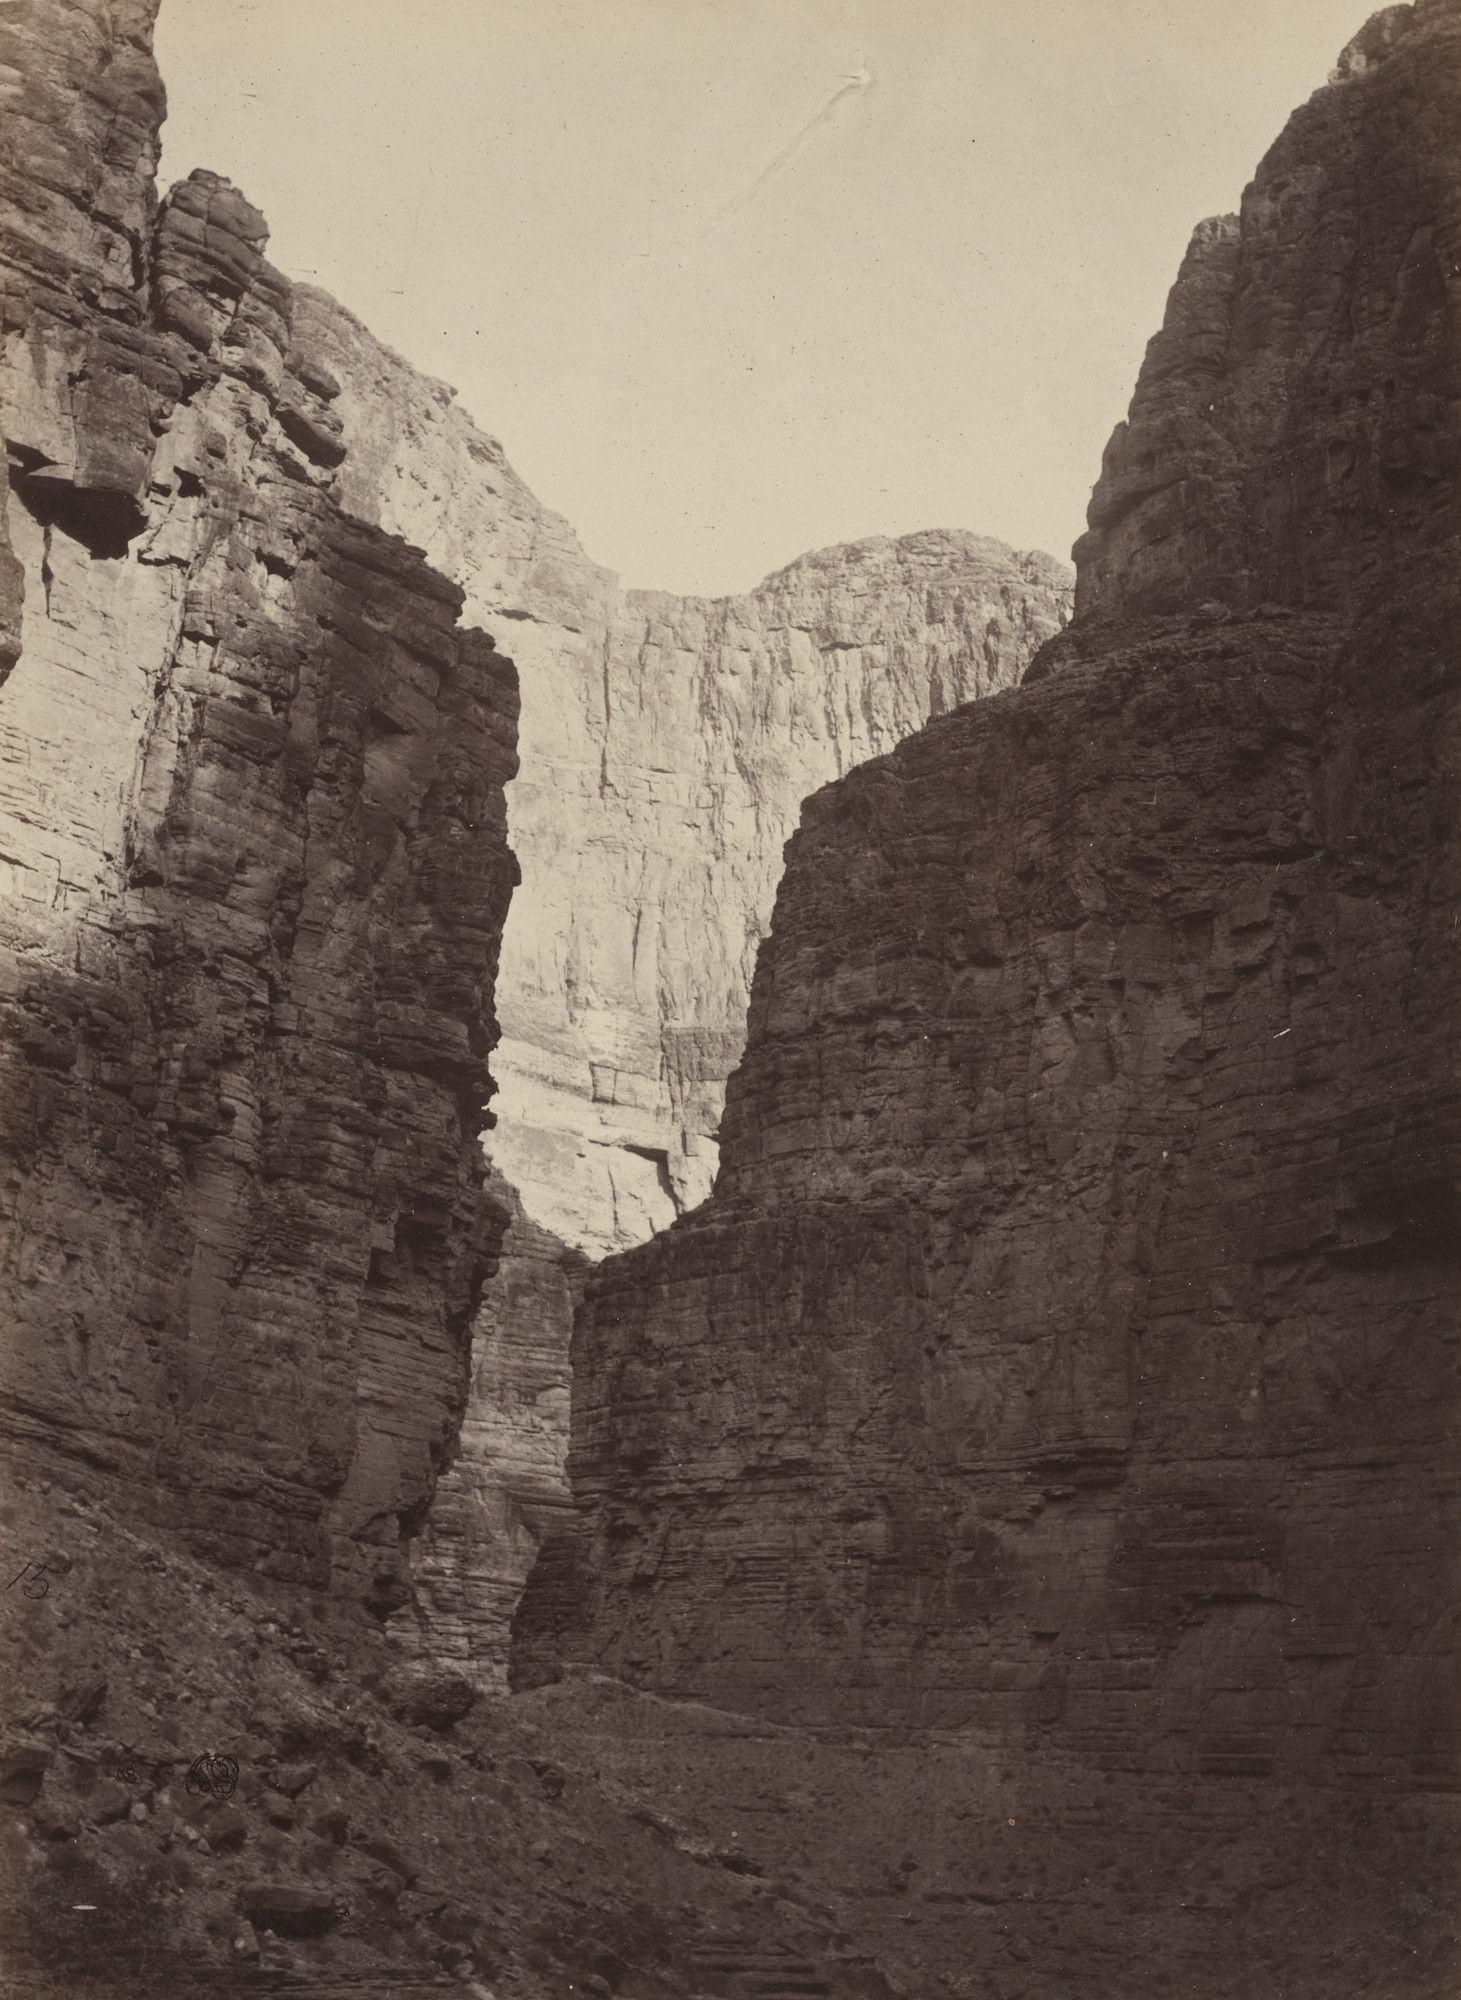 Timothy O'Sullivan, William H. Bell. Limestone Walls, Kanab Wash, Colorado River. 1872